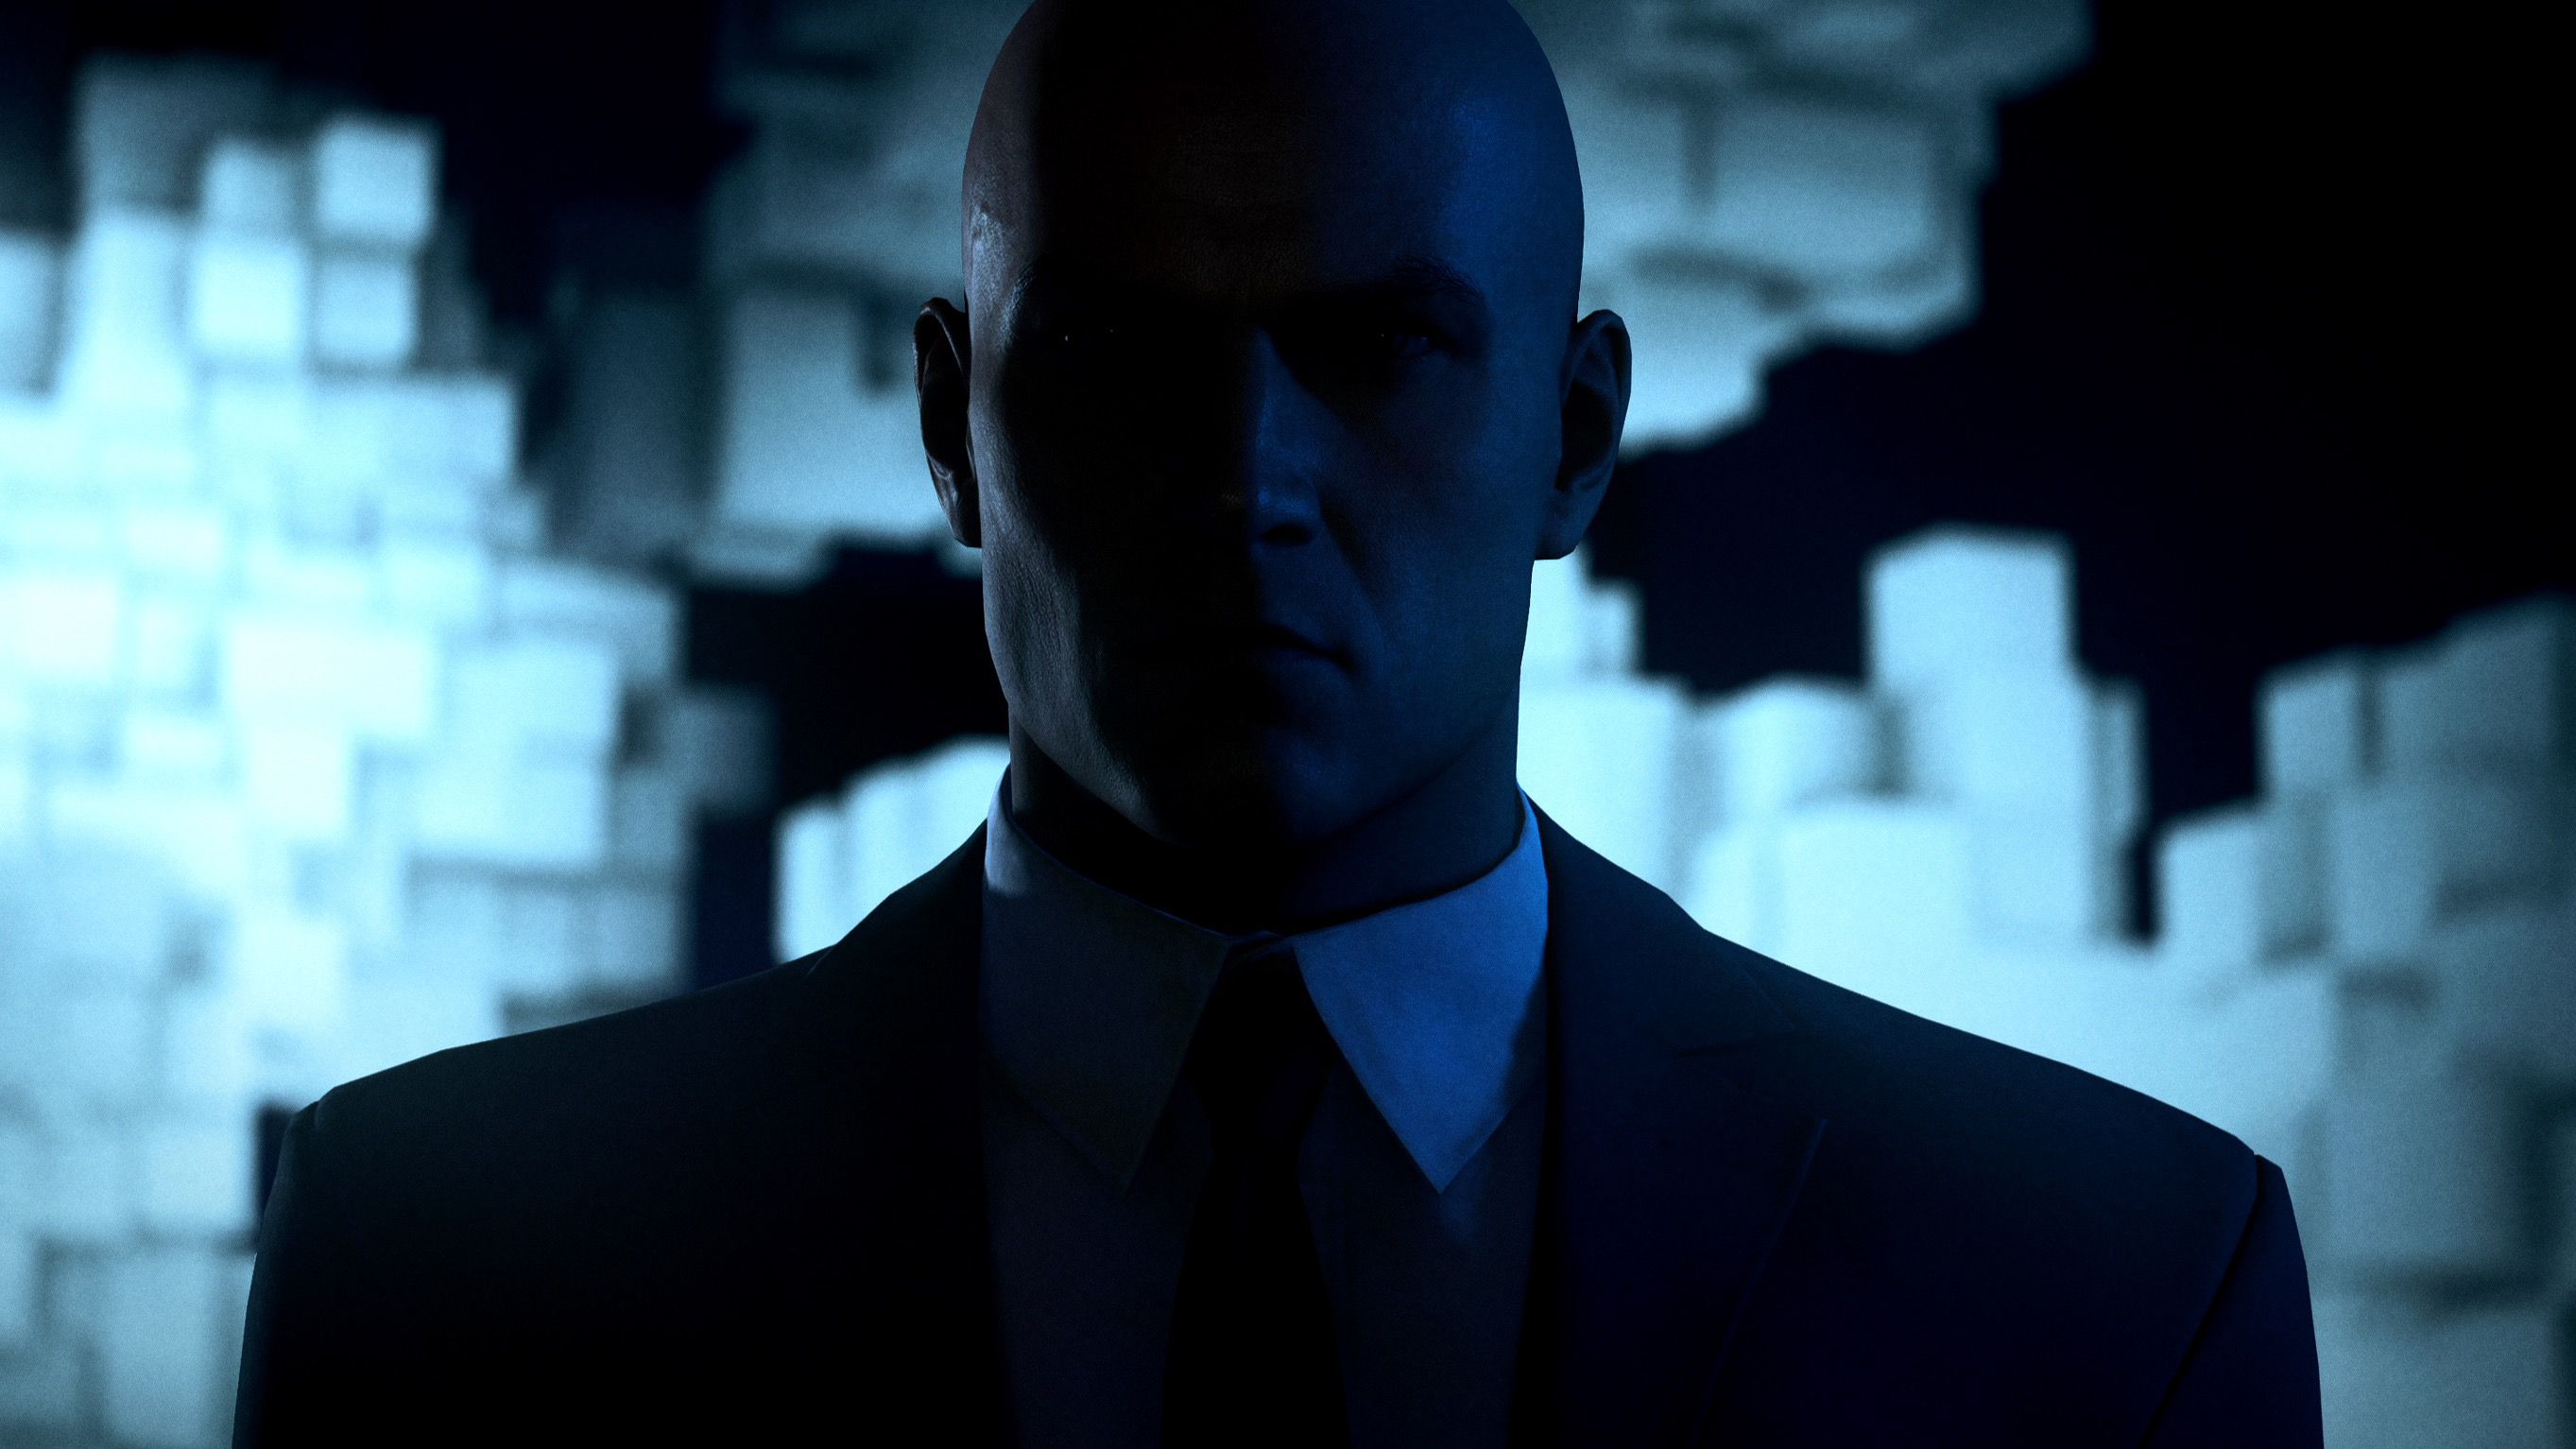 Hitman Iii Is Coming To Pc Ps4 Ps5 Xbox One And Series X In Early 2021